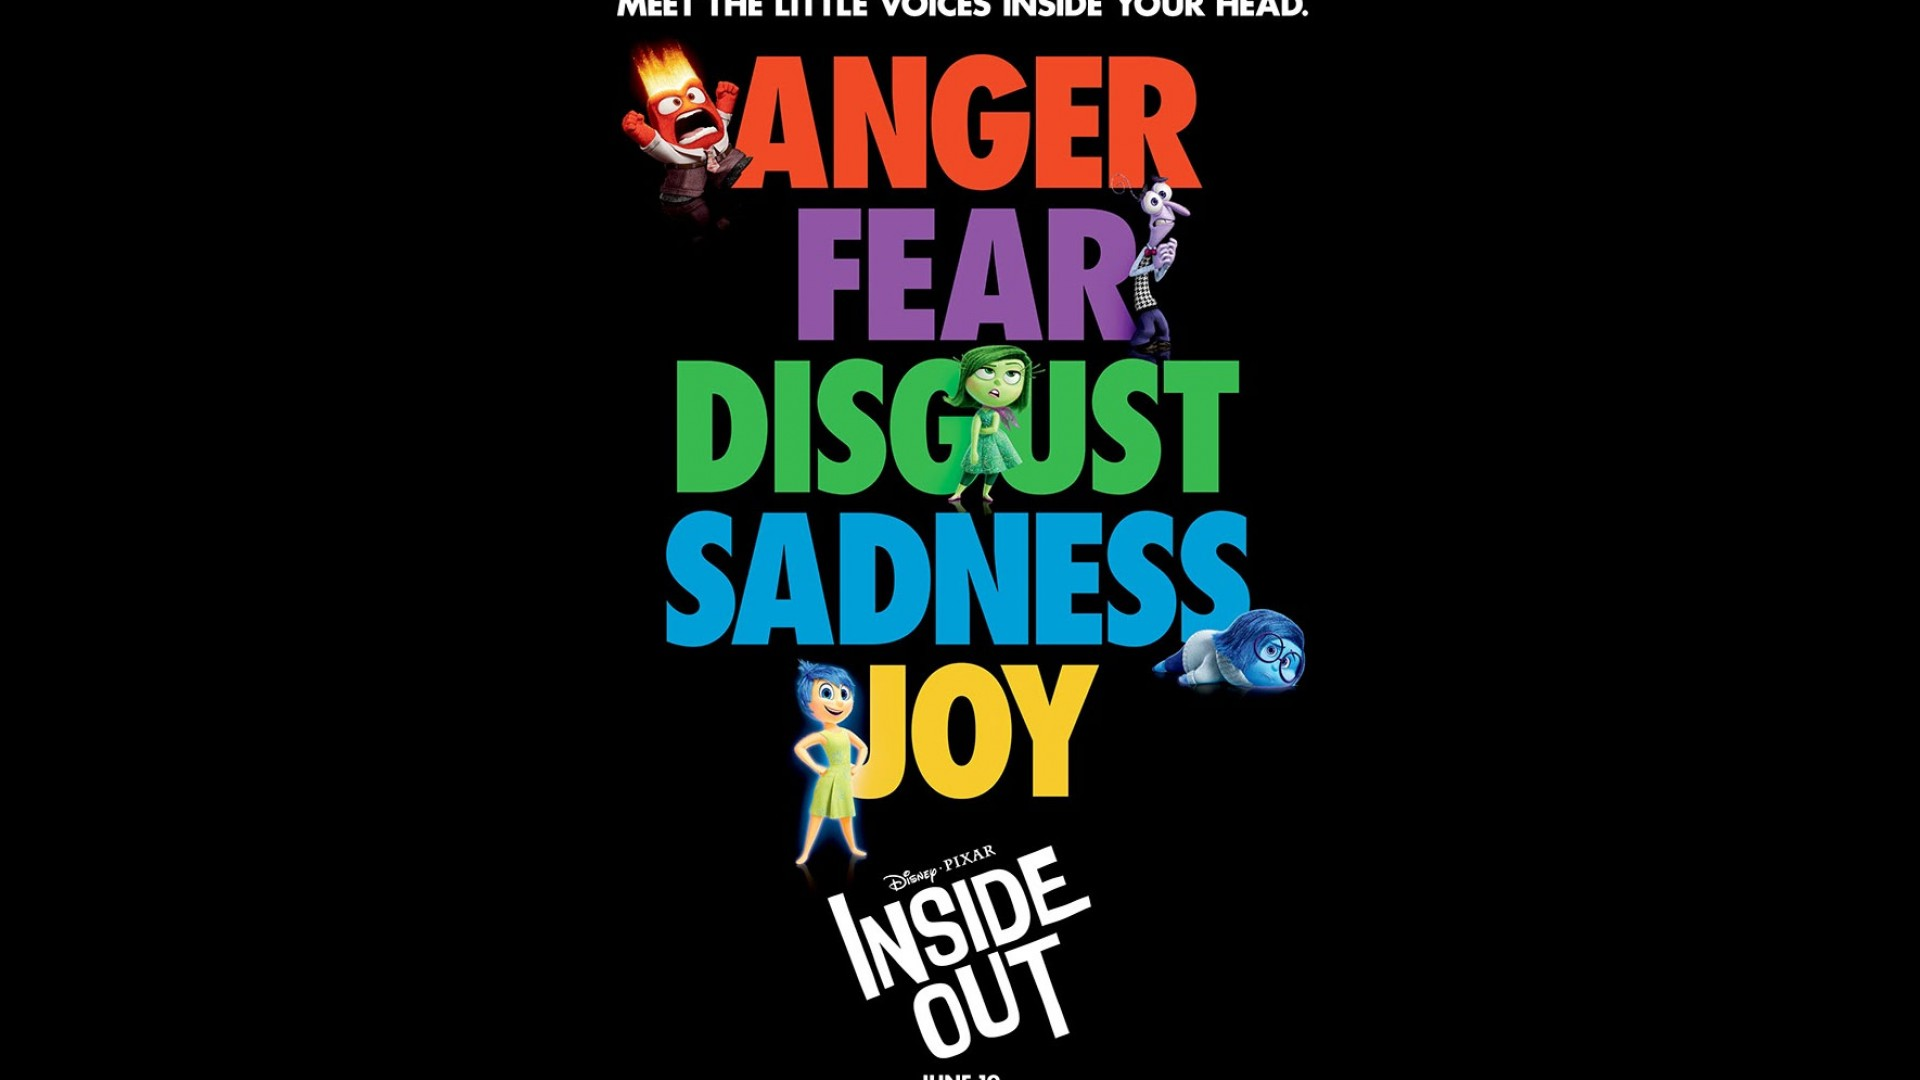 Inside Out 2015 Movie Poster HD Wallpaper   Stylish HD Wallpapers 1920x1080